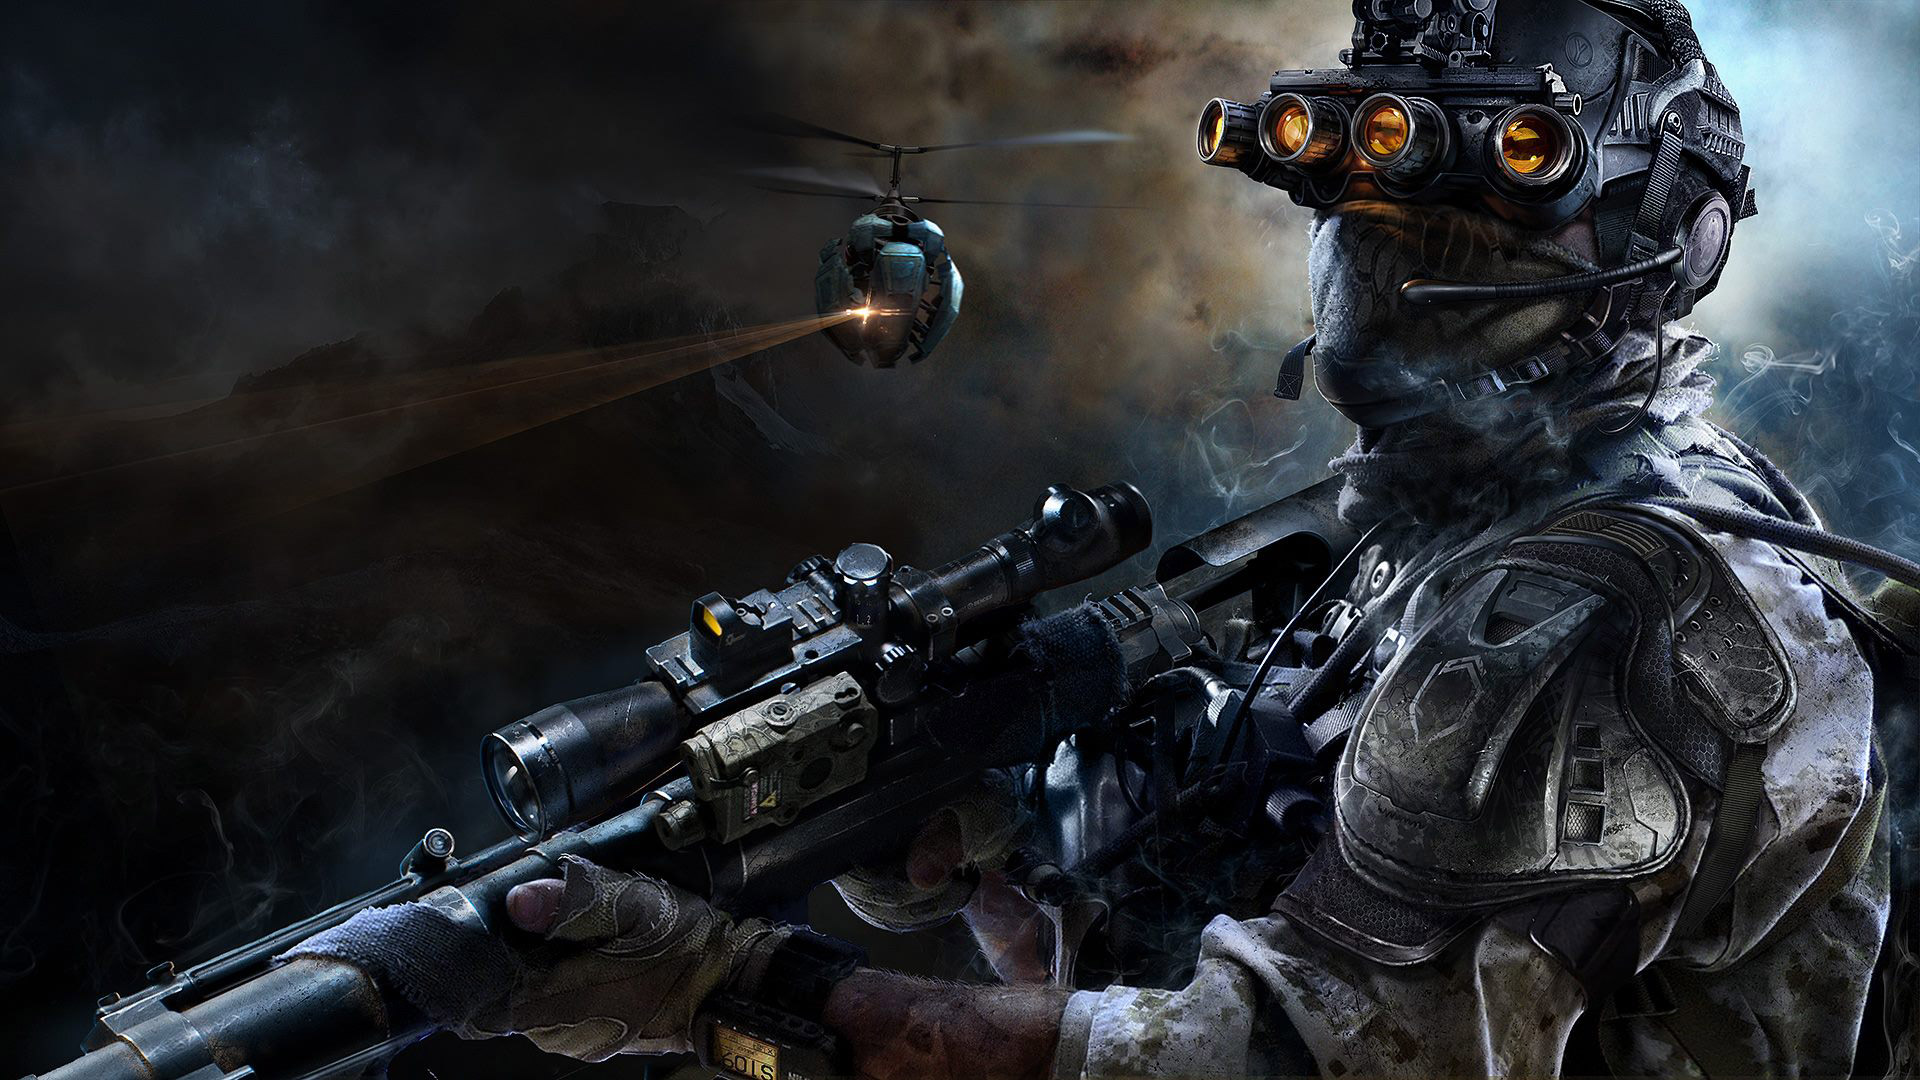 Free Sniper: Ghost Warrior 3 Wallpaper in 1920x1080